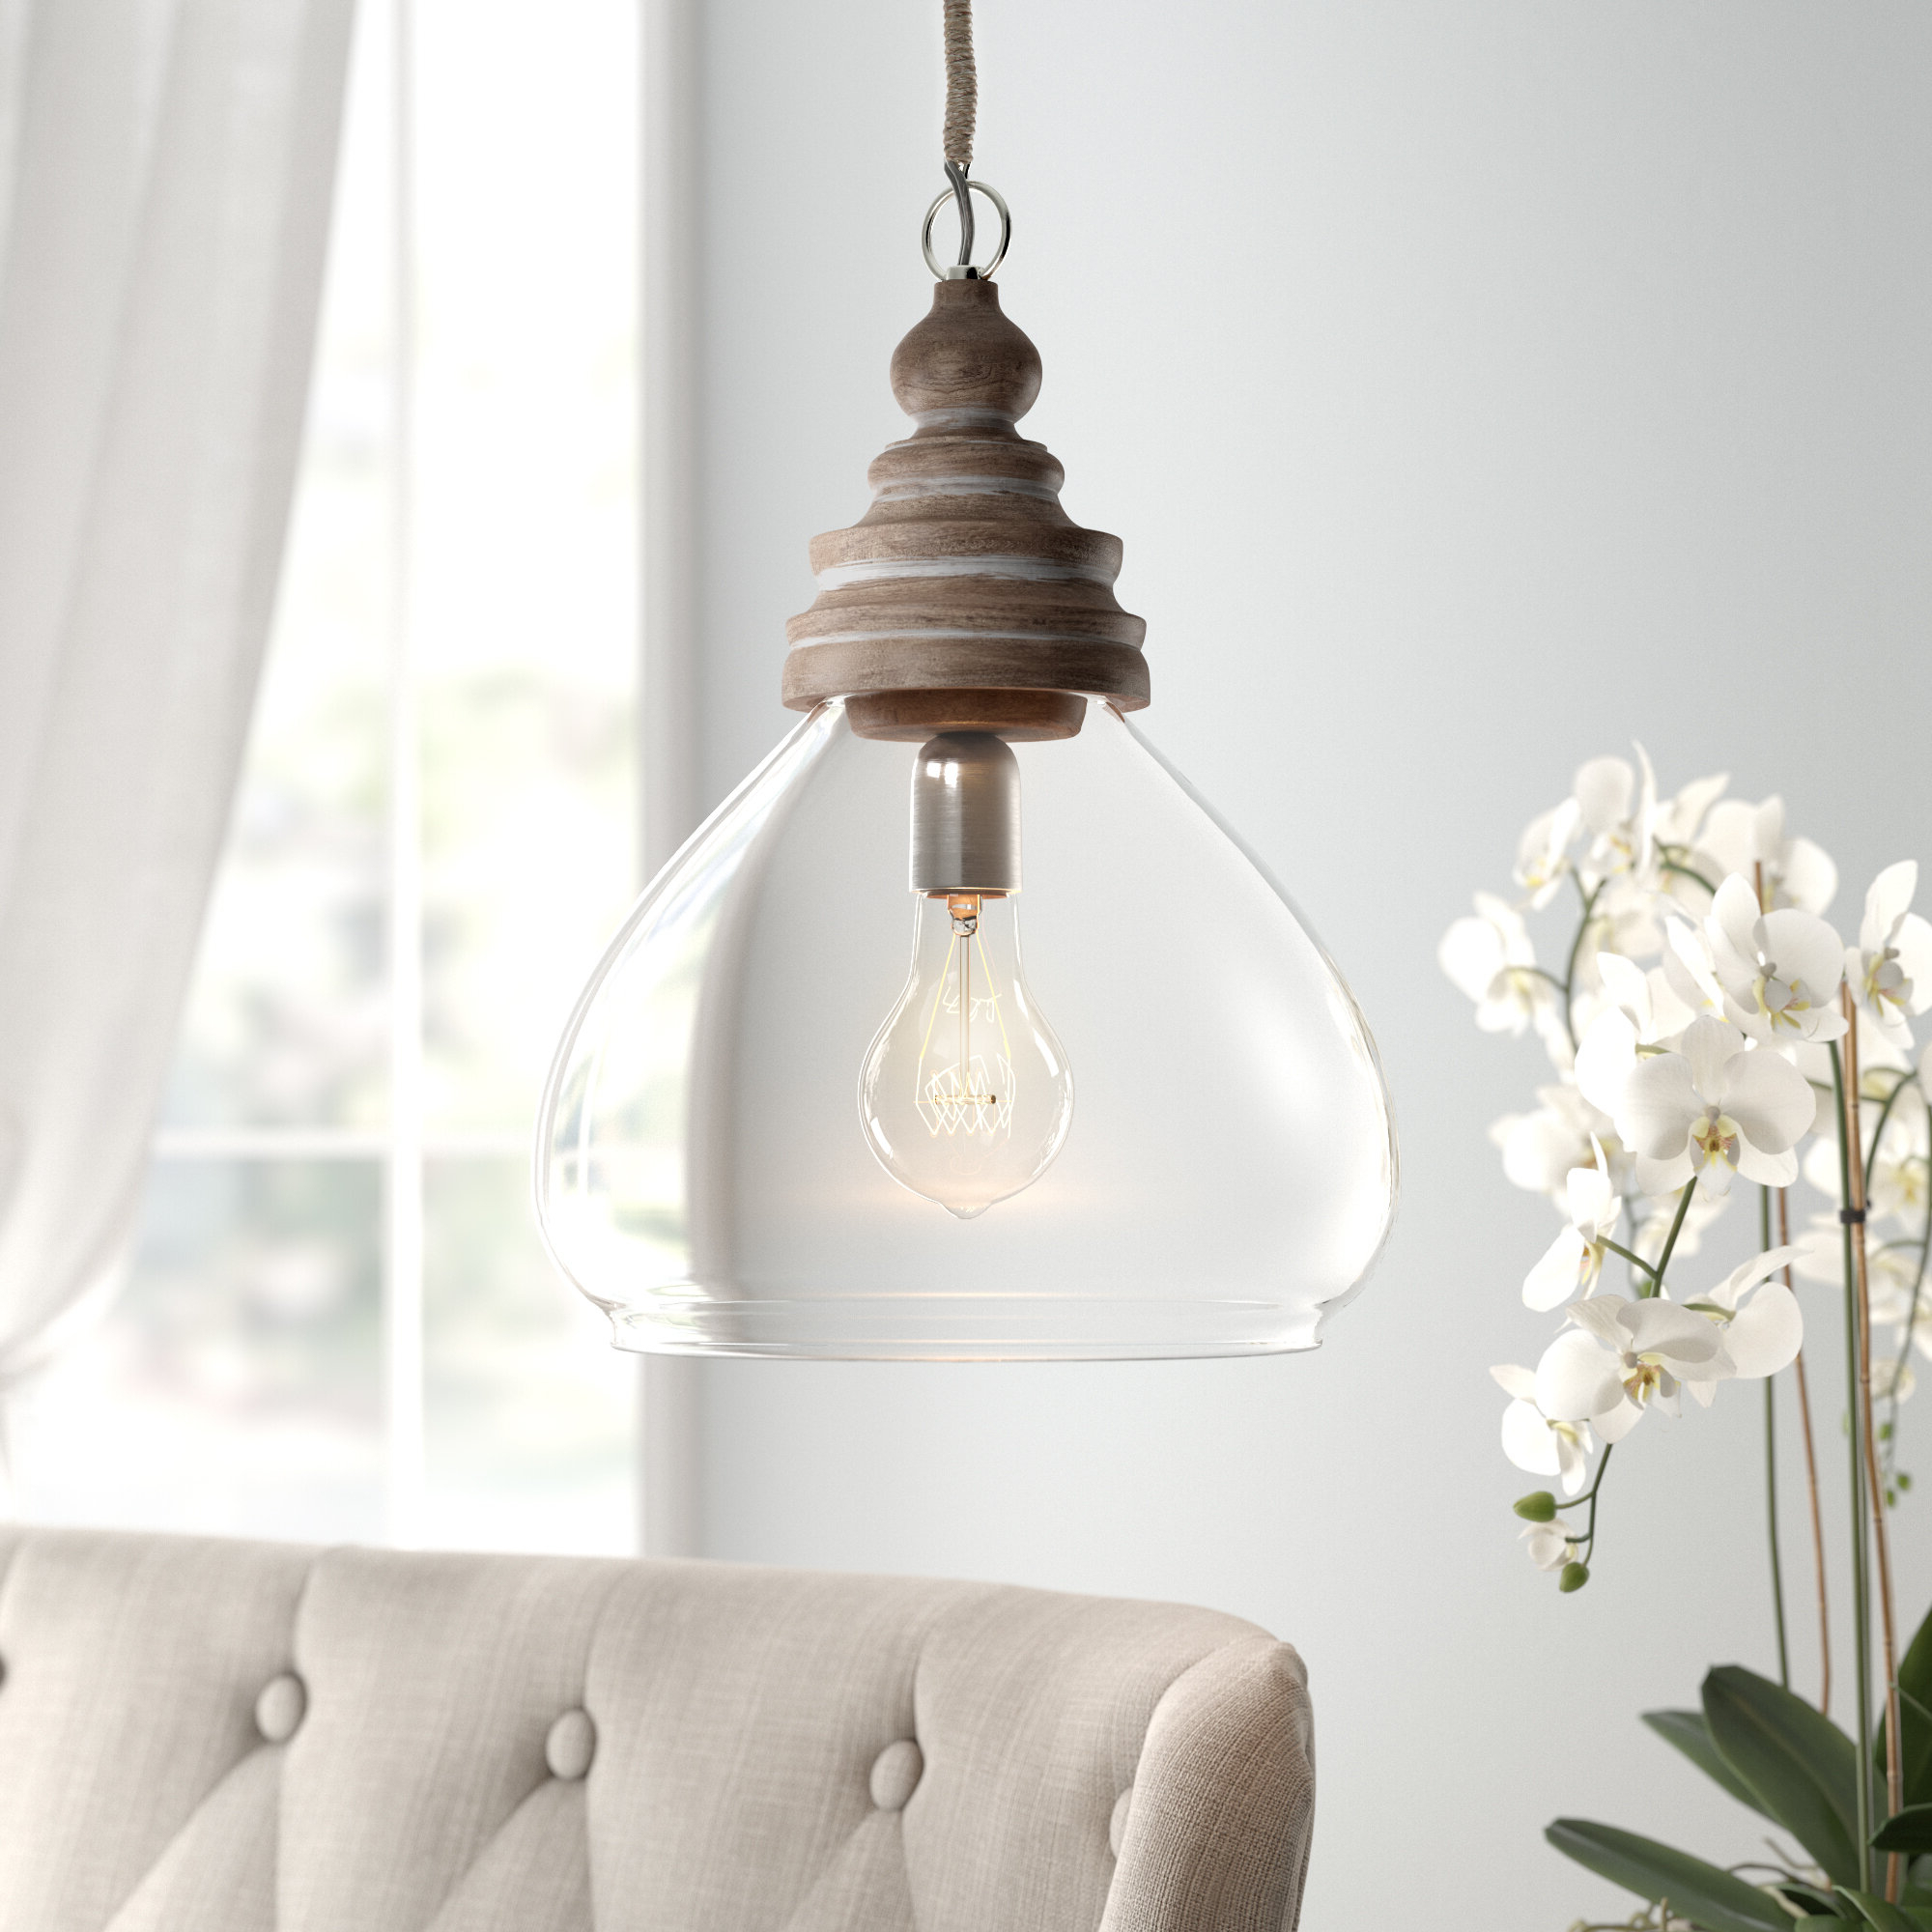 Abordale 1 Light Single Dome Pendants Within Newest Brisa 1 Light Single Dome Pendant (View 4 of 20)